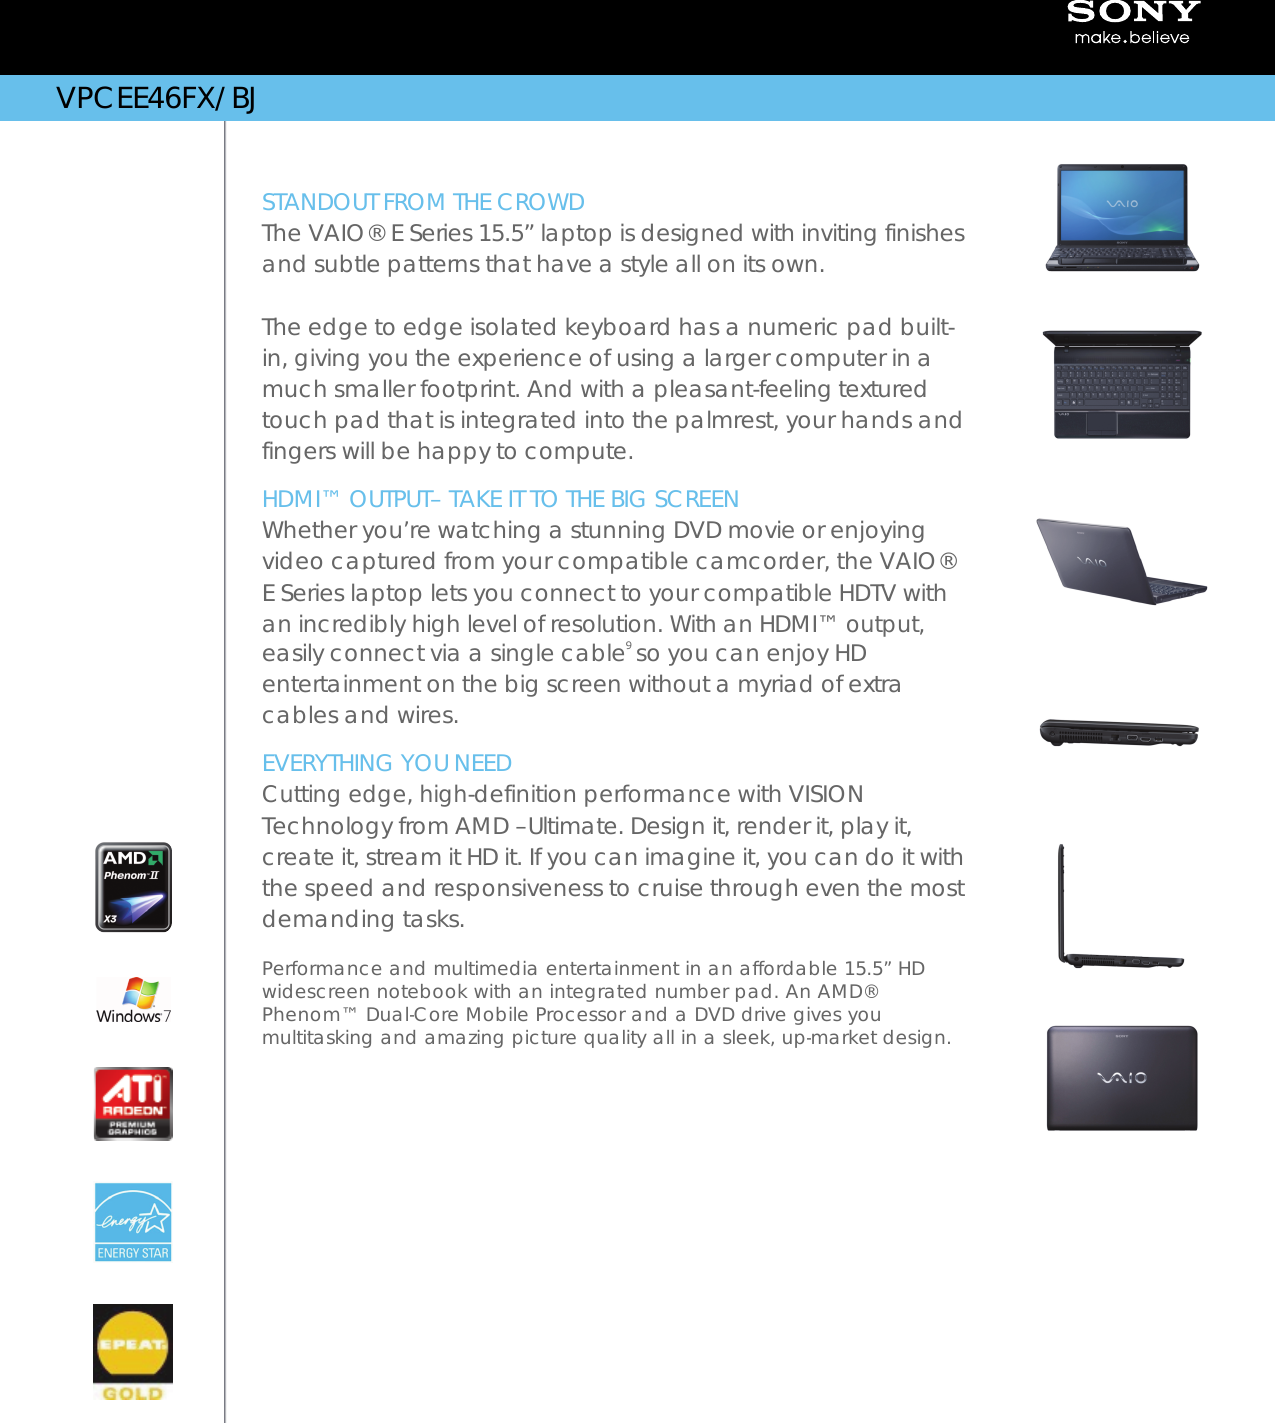 DOWNLOAD DRIVERS: SONY VAIO VPCEE46FXBJ TOUCHPAD SETTINGS